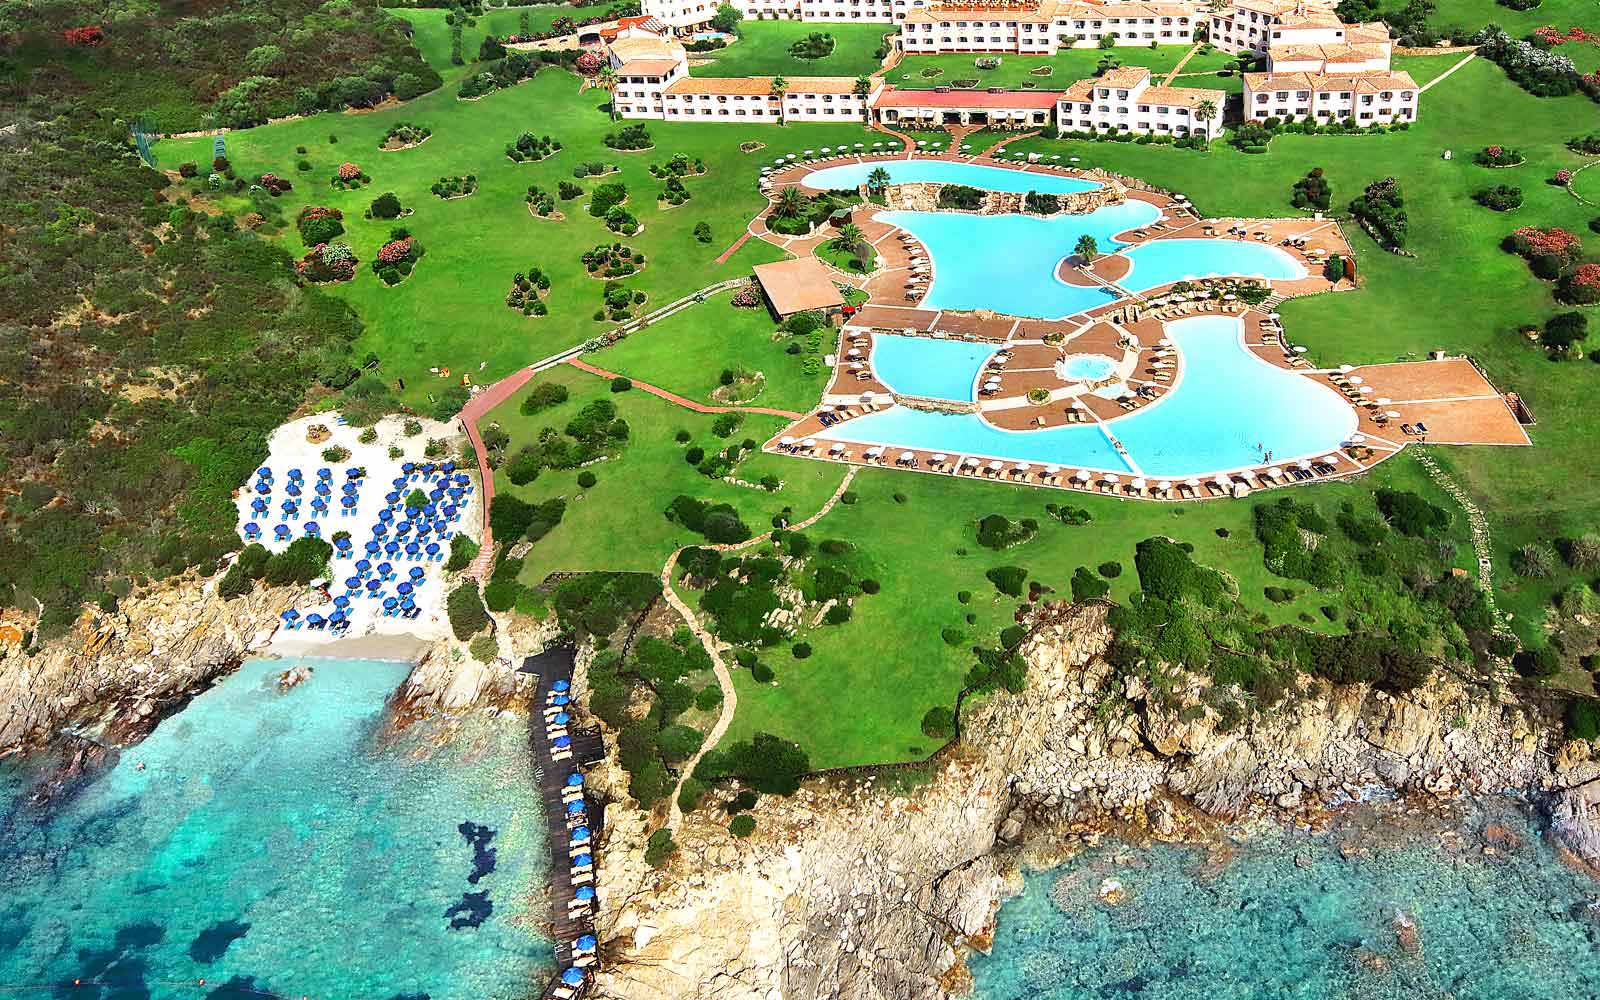 Colonna Resort aerial view